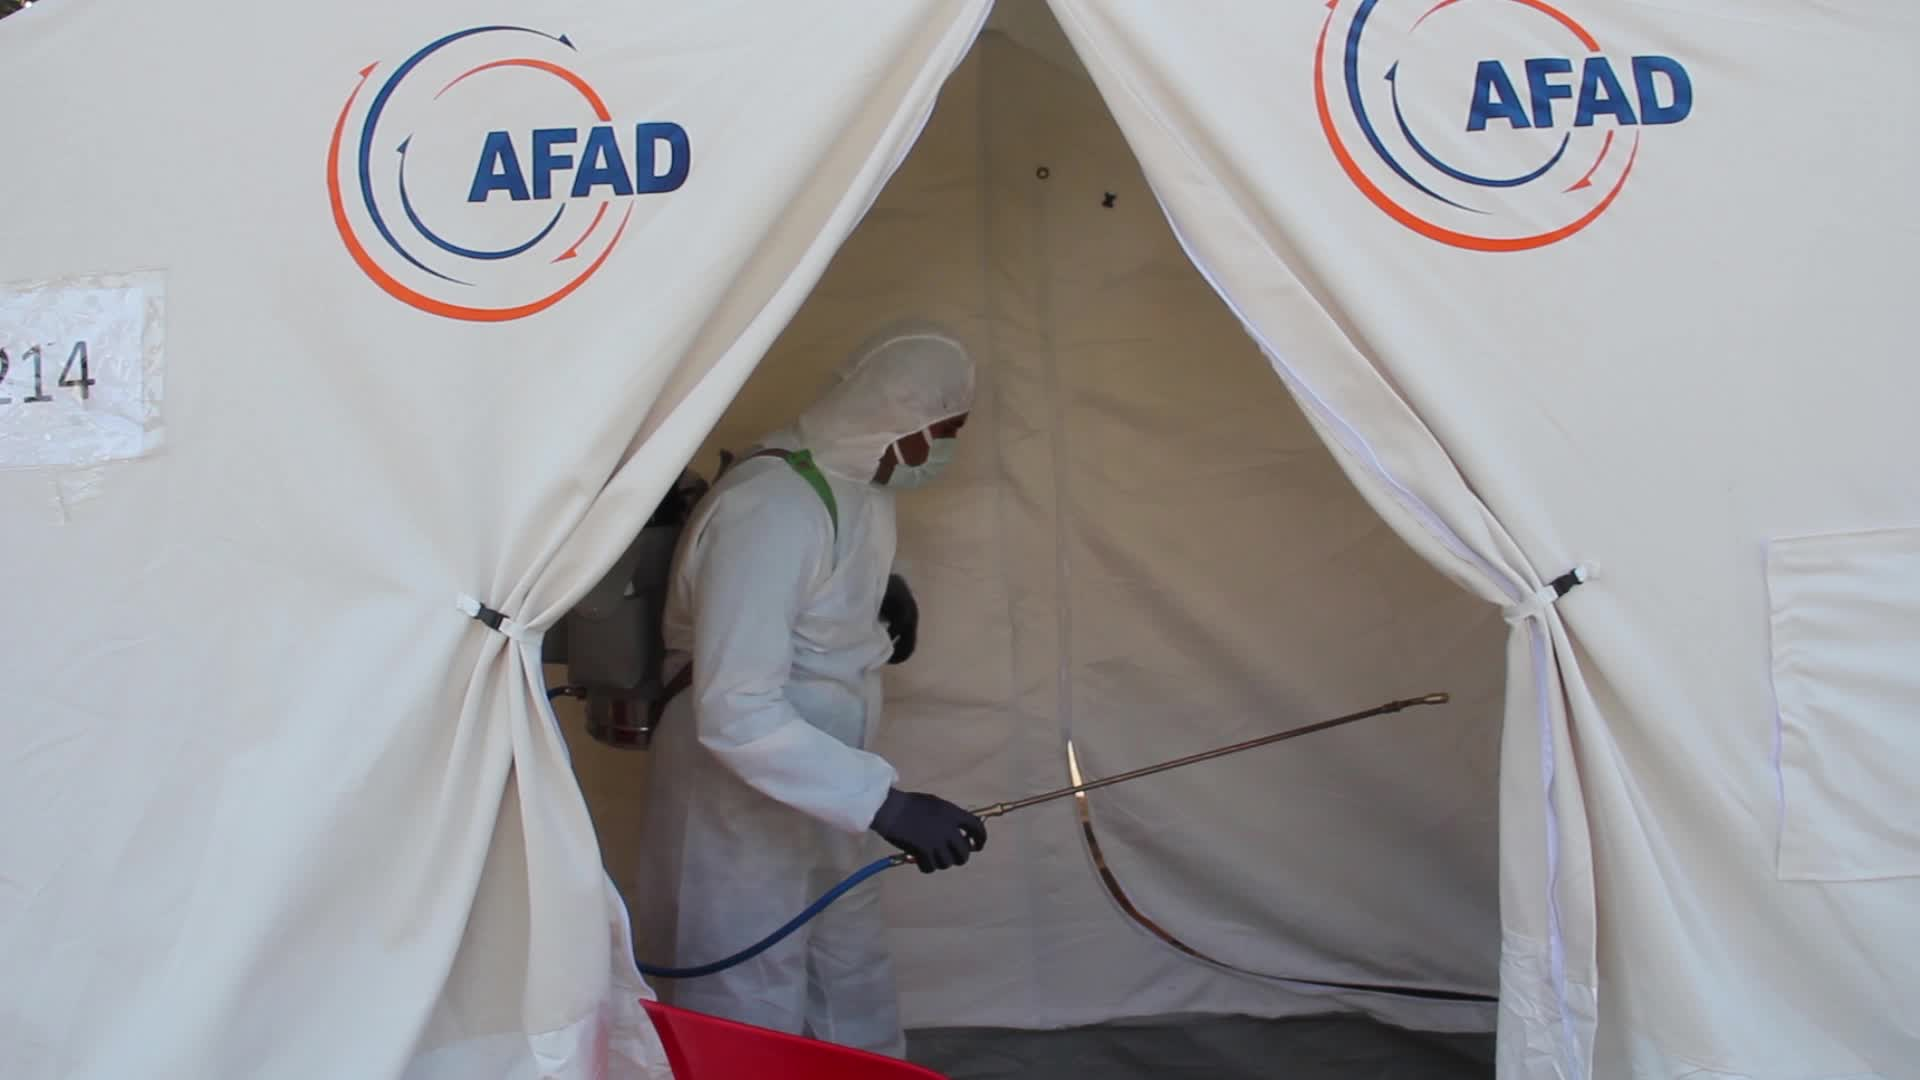 Disinfection and Sterilization team of Izmir Municipality sterilizes tent city in Izmir, in Turkey